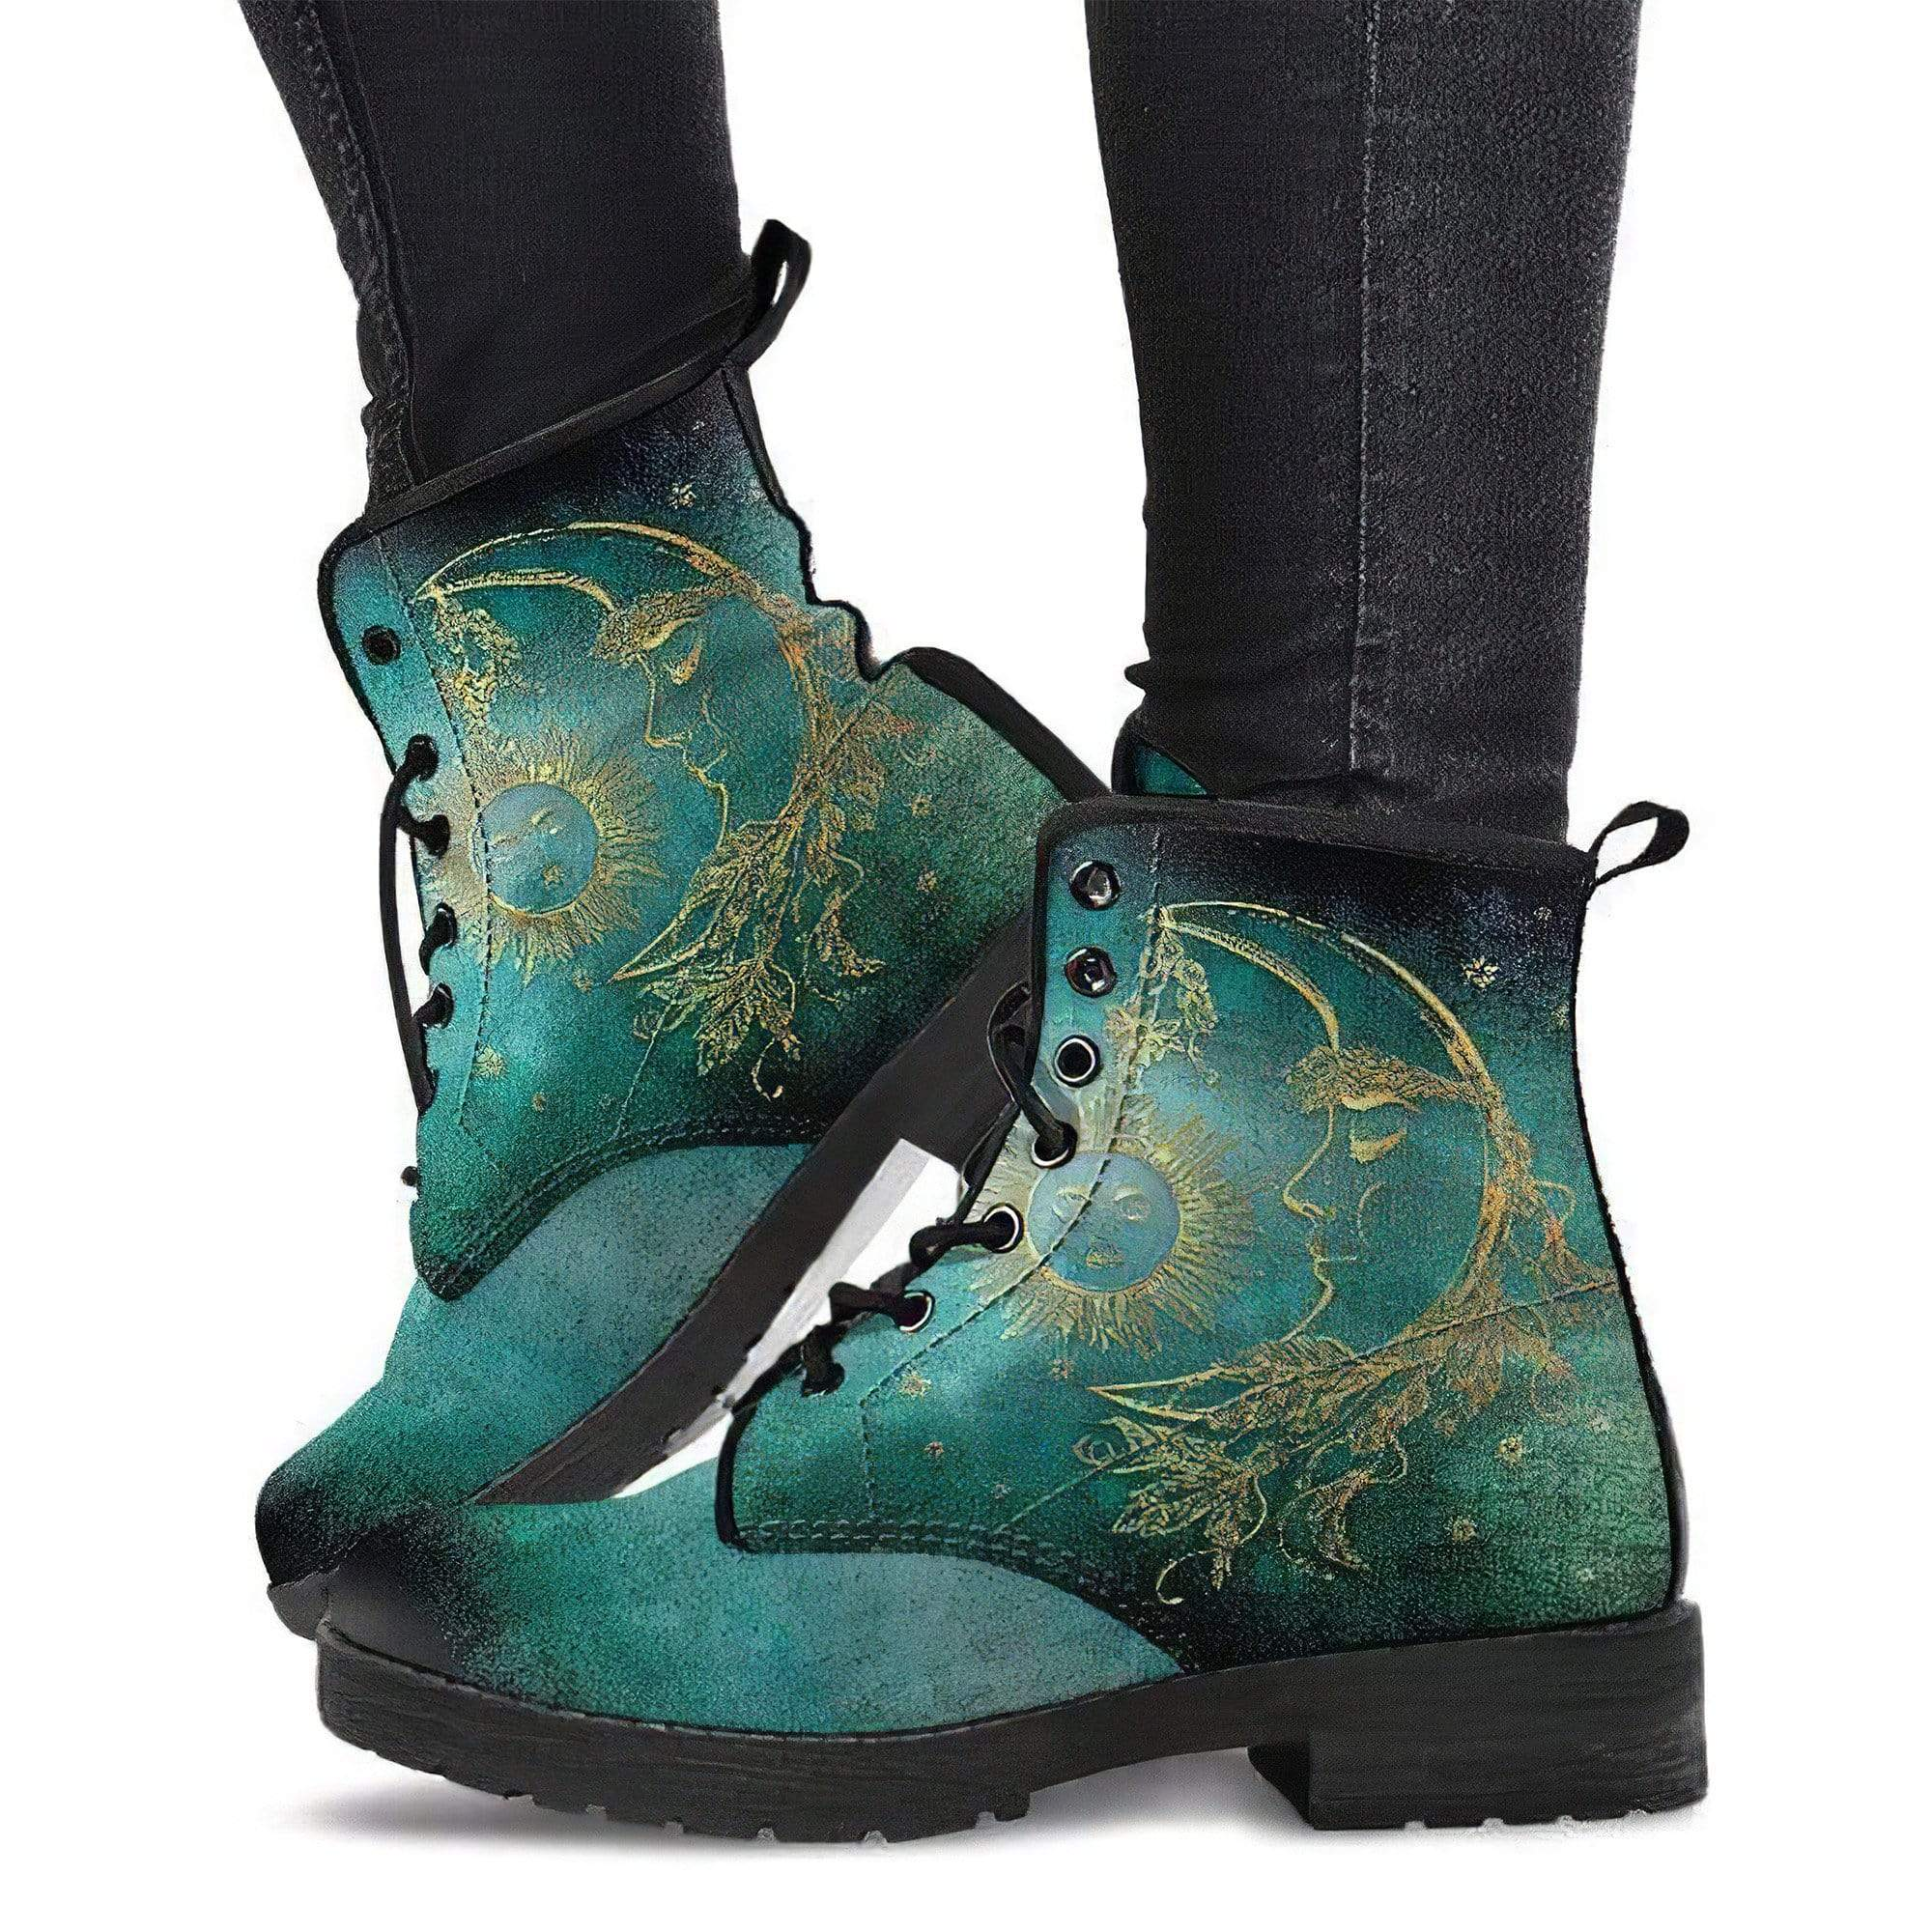 Sun Moon Handcrafted Boots Women's Leather Boots